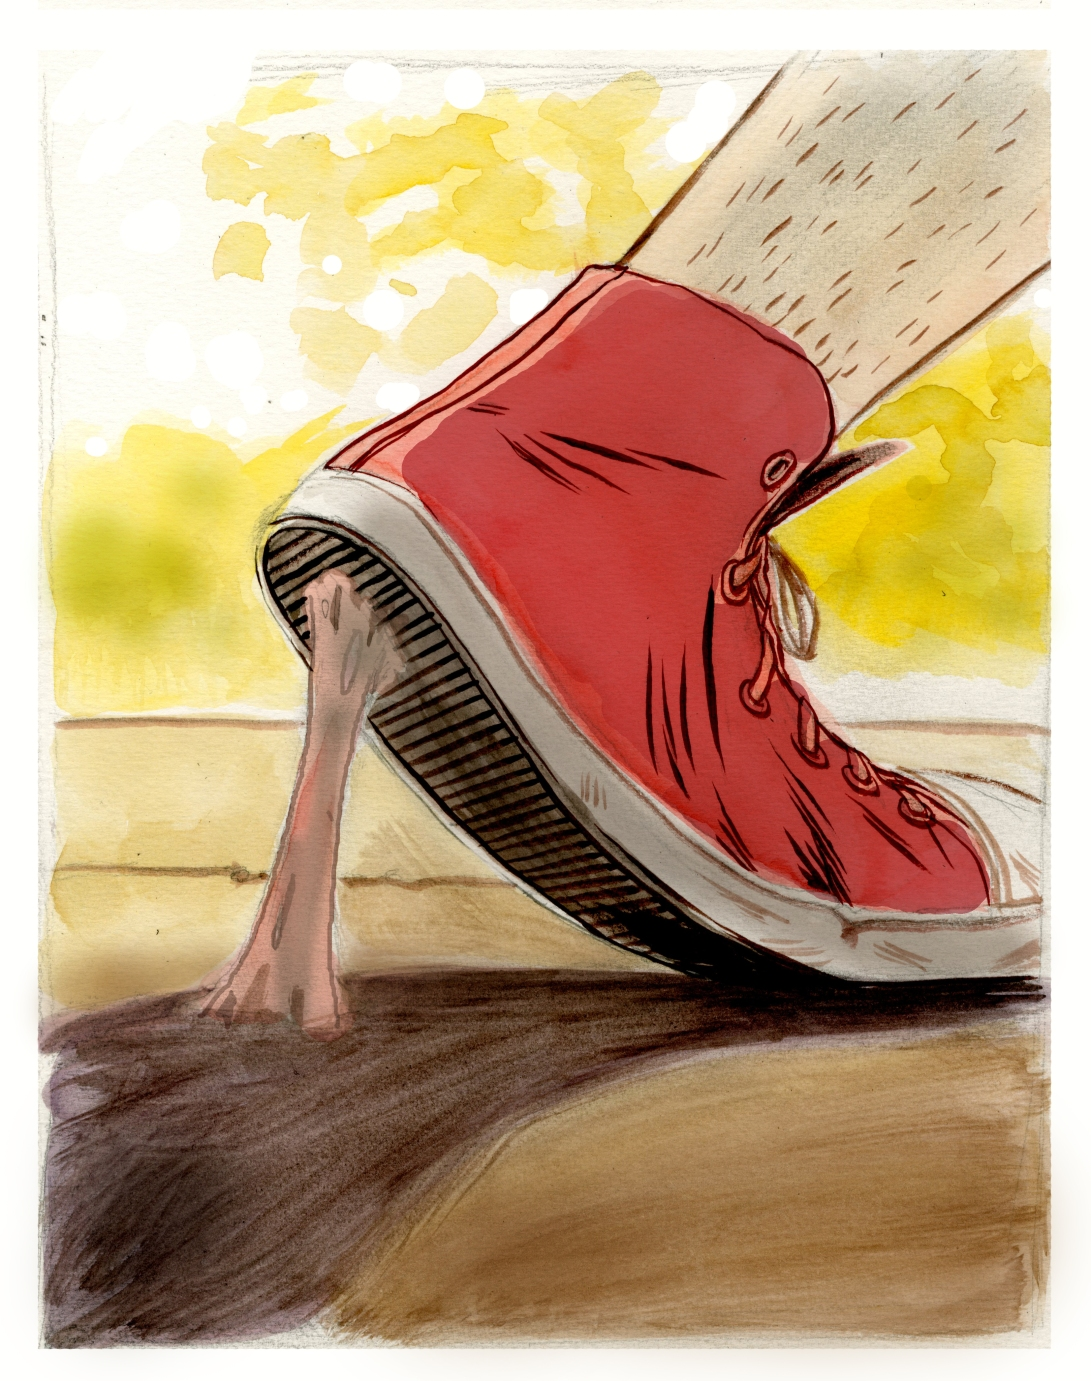 Illustration Friday: Stretch